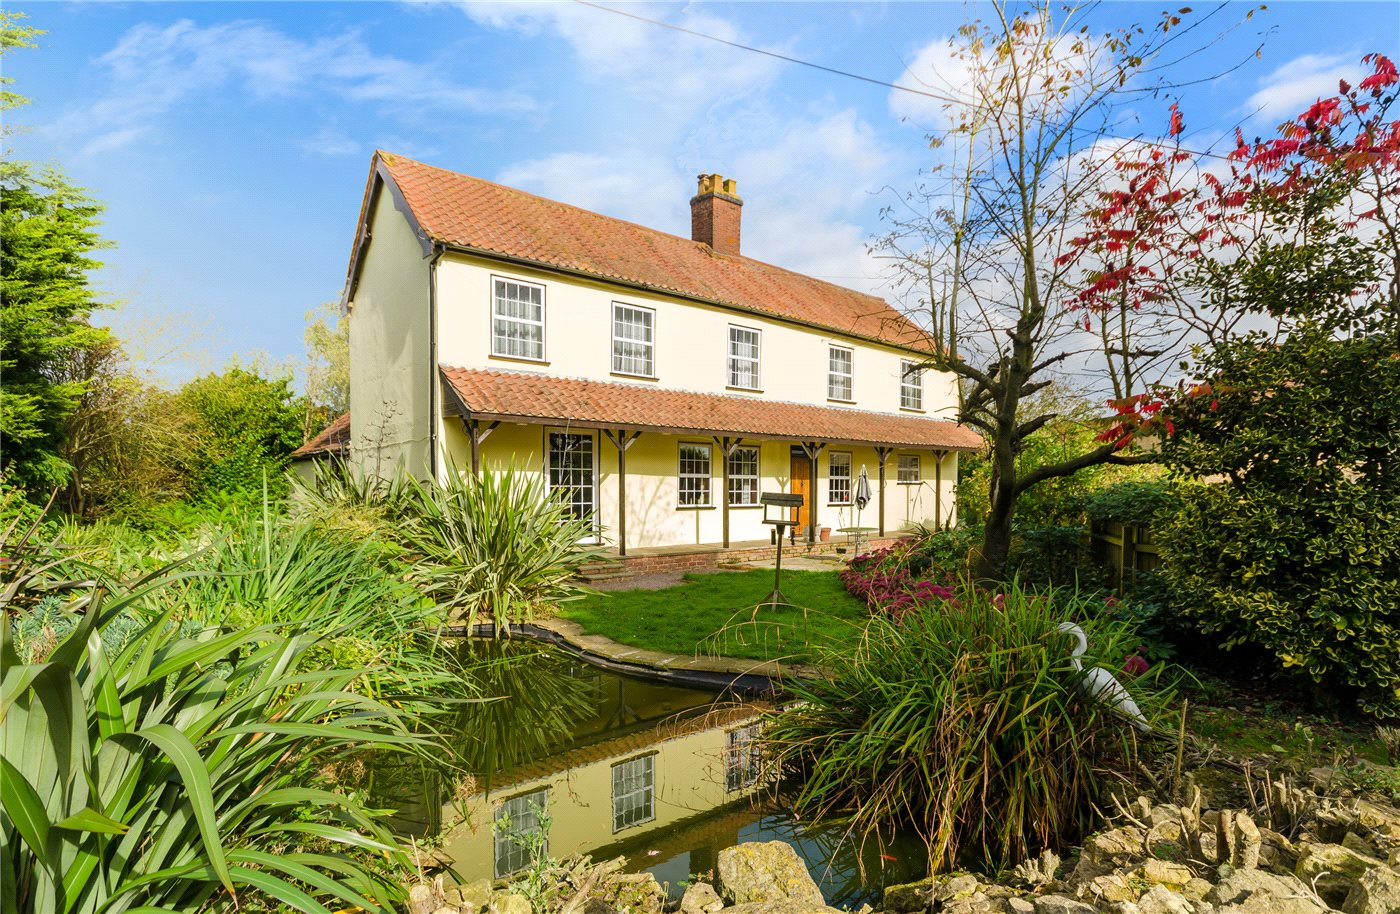 4 Bedrooms Detached House for sale in Cold Harbour, Grantham, NG31